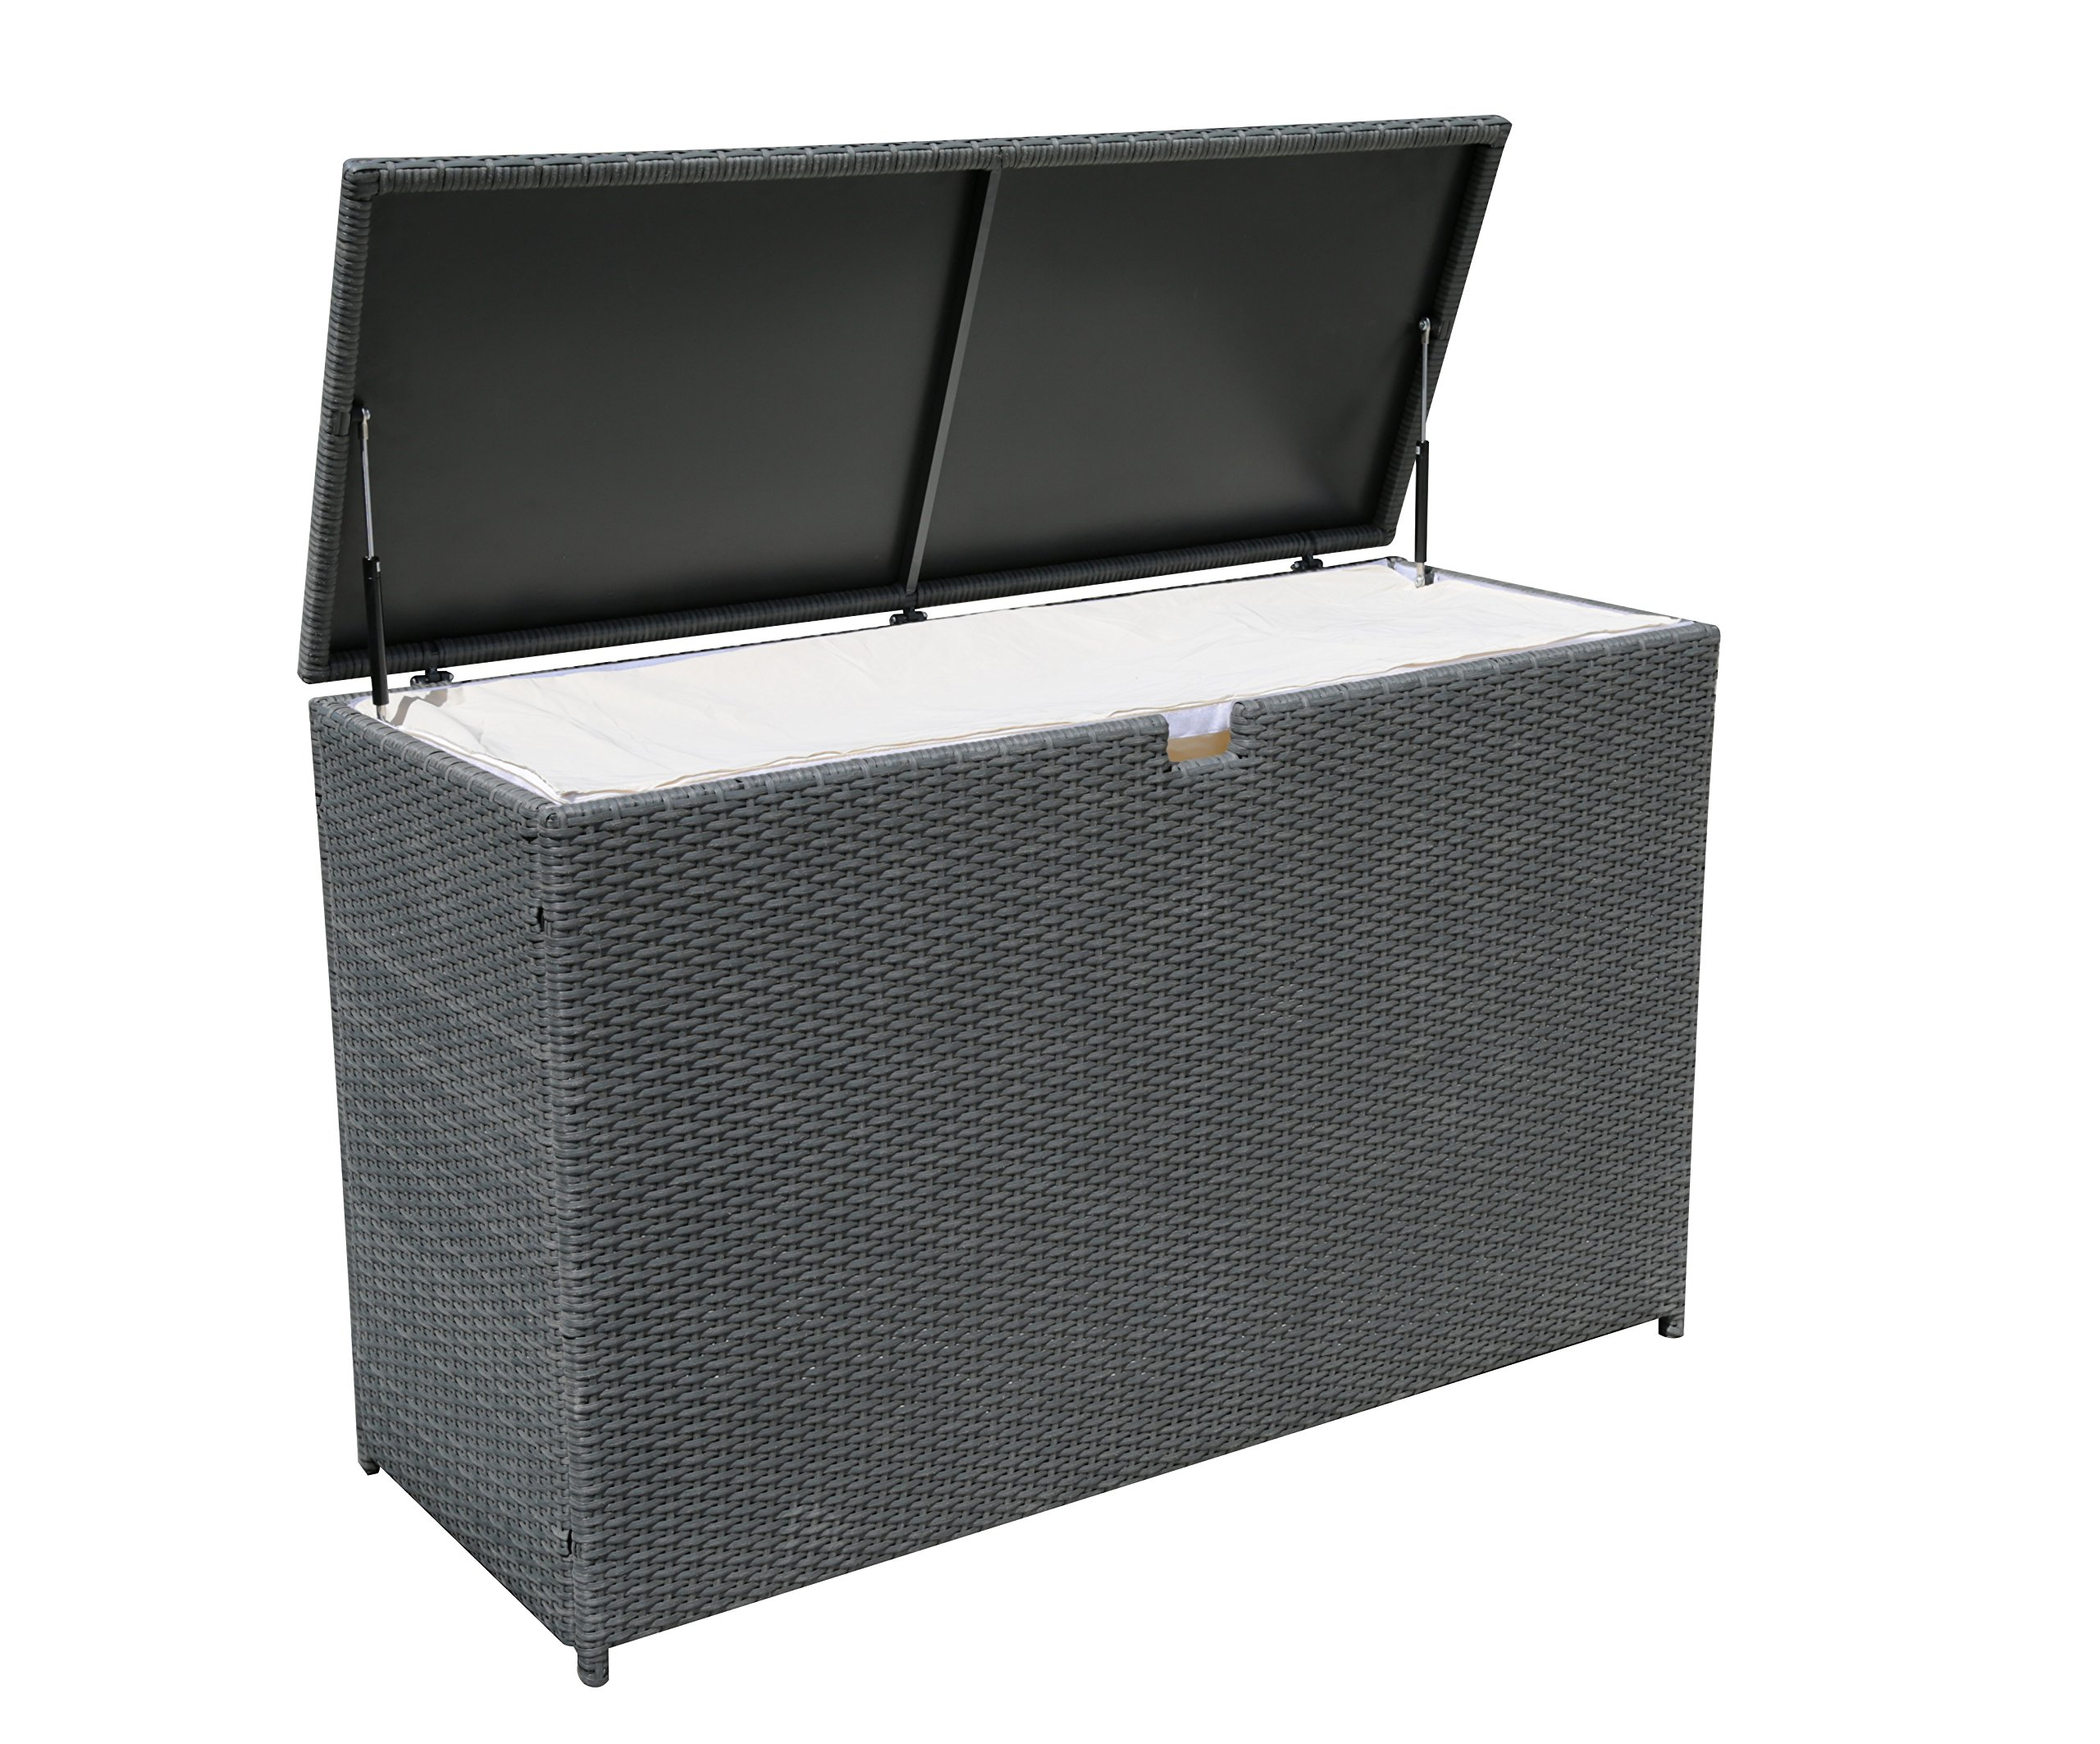 PATIOROMA Outdoor Aluminum Frame Wicker Cushion Storage Bin Deck Box, Gray by PATIOROMA